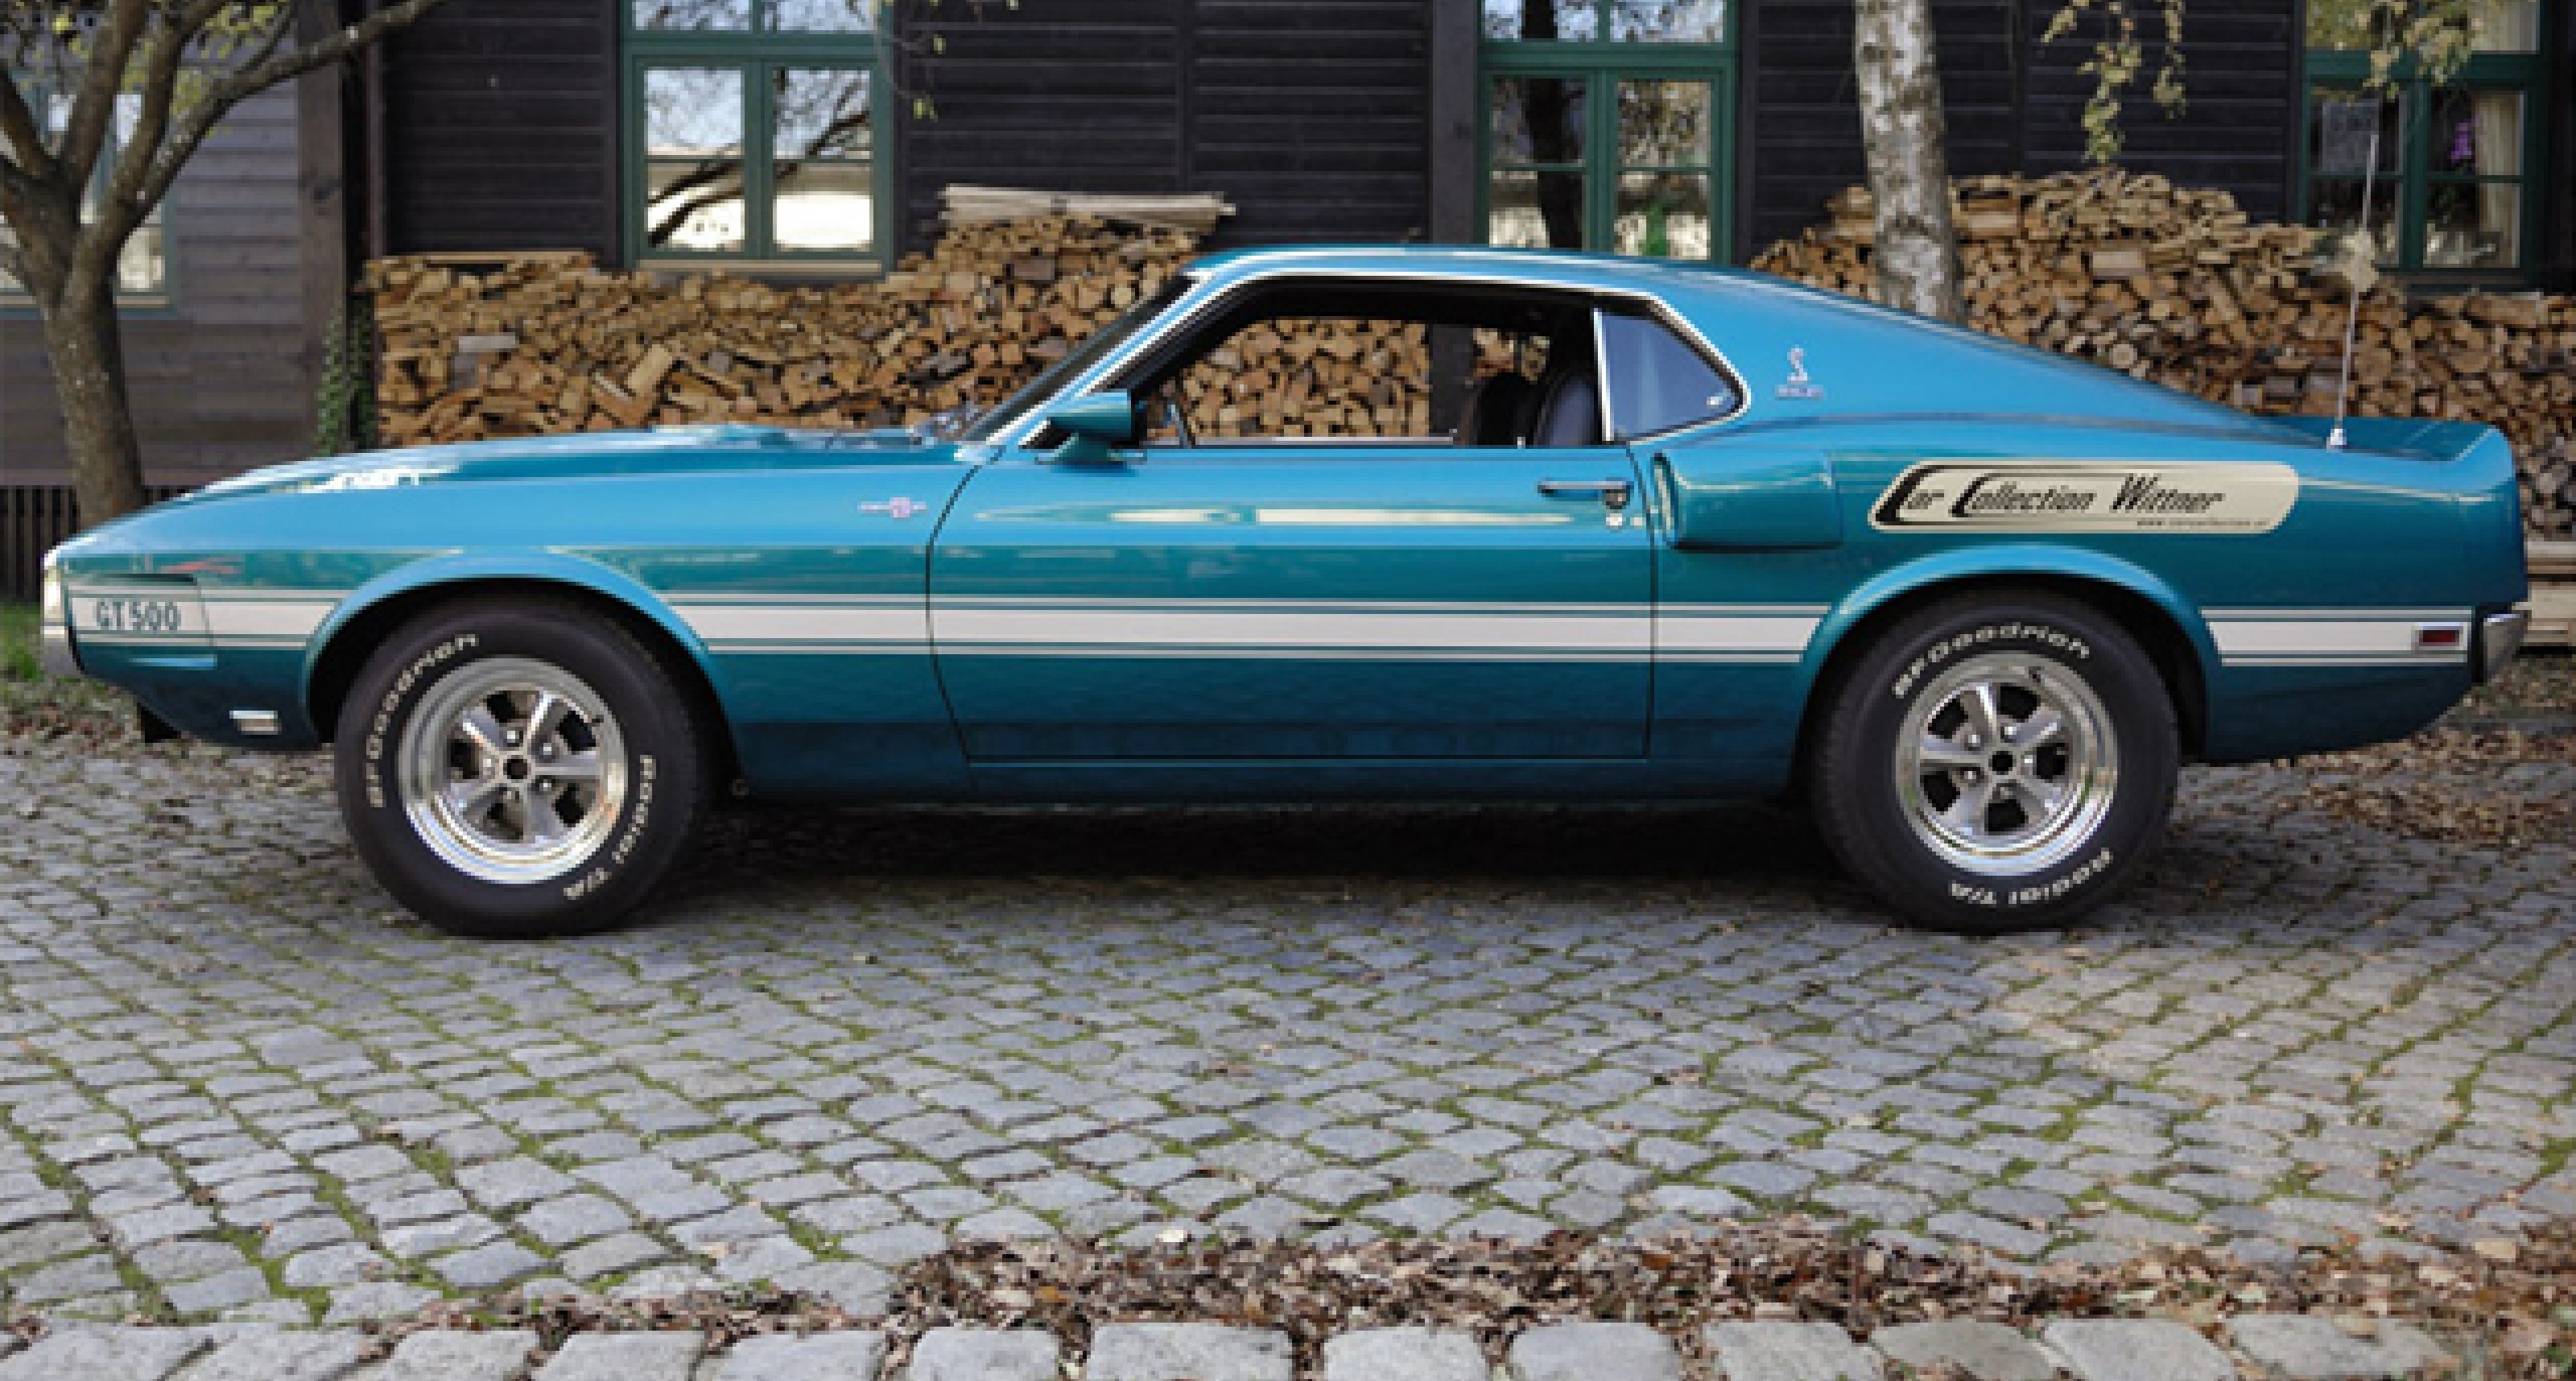 Editor's Choice: Ford Shelby GT 500 Super Cobra Jet